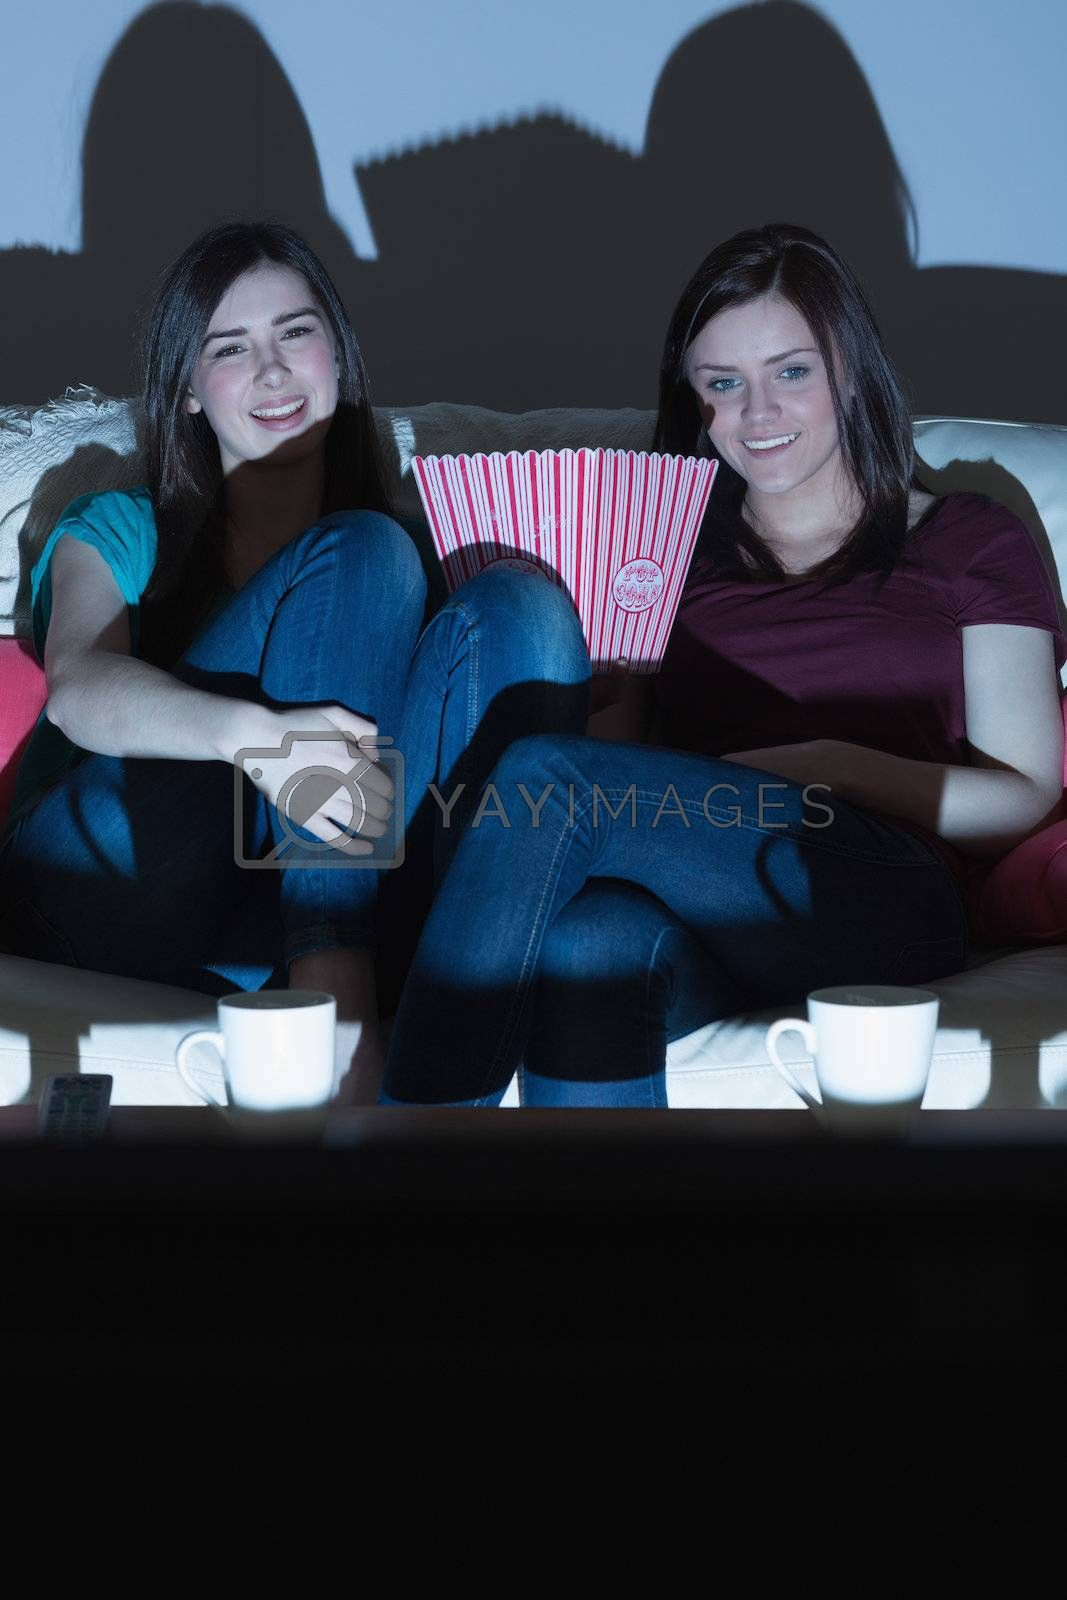 Two smiling friends on the couch watching tv together in the dark by Wavebreakmedia